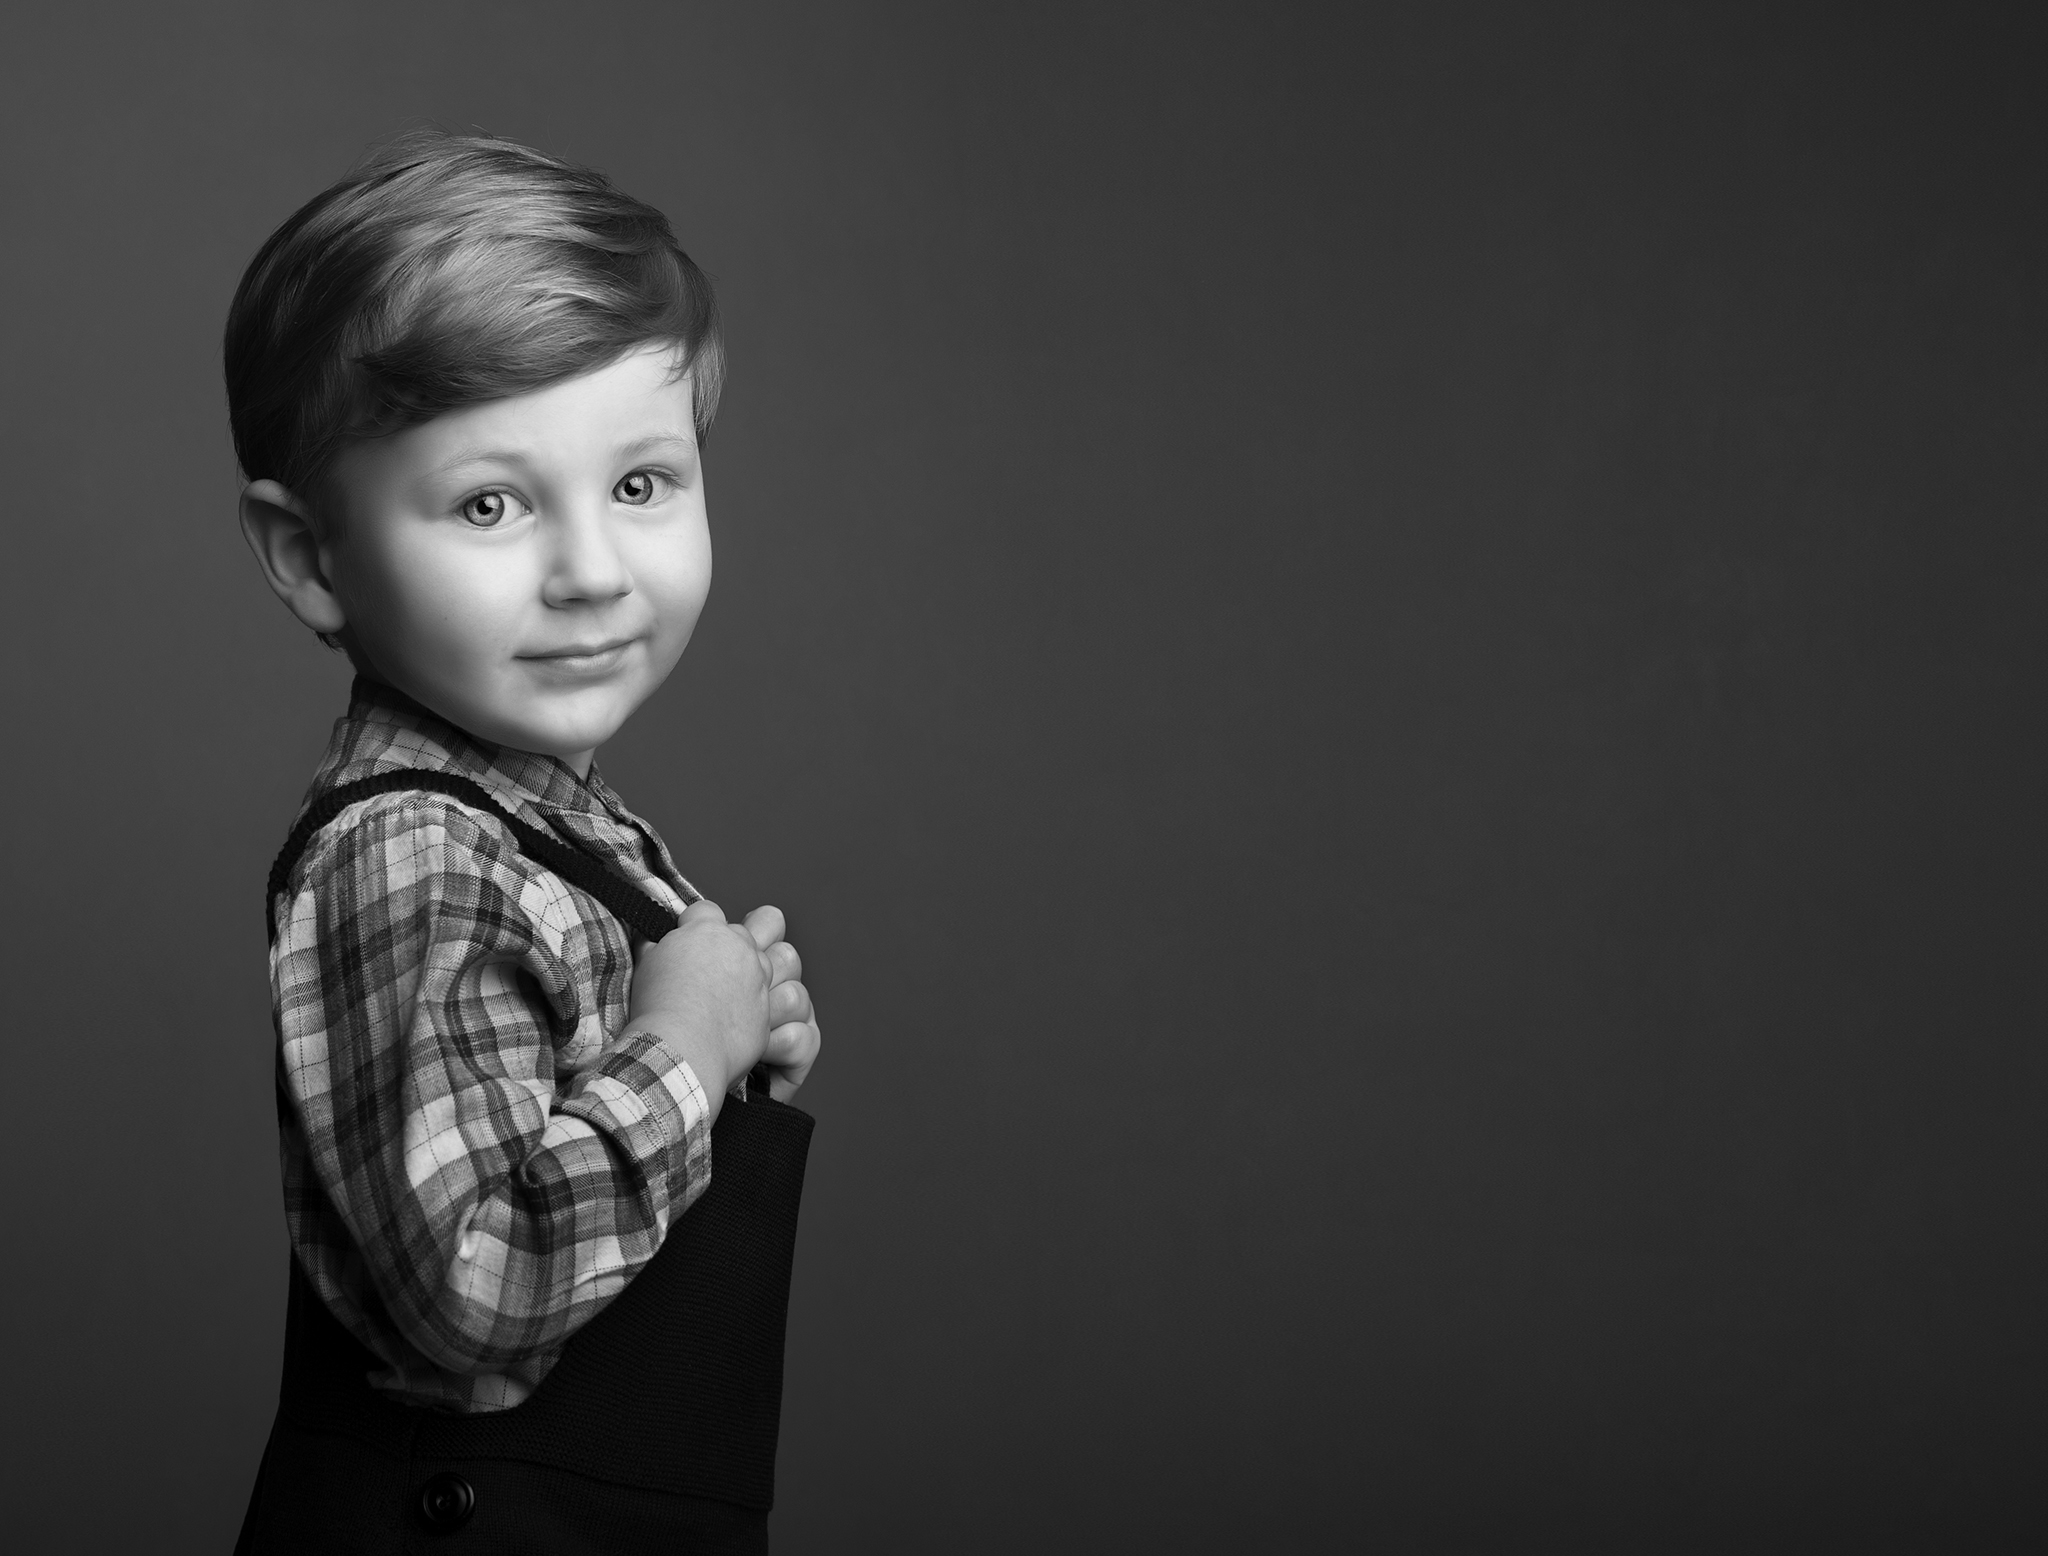 elizabethg_photography_hertfordshire_fineart_child_portrait_model_tommy1.jpg